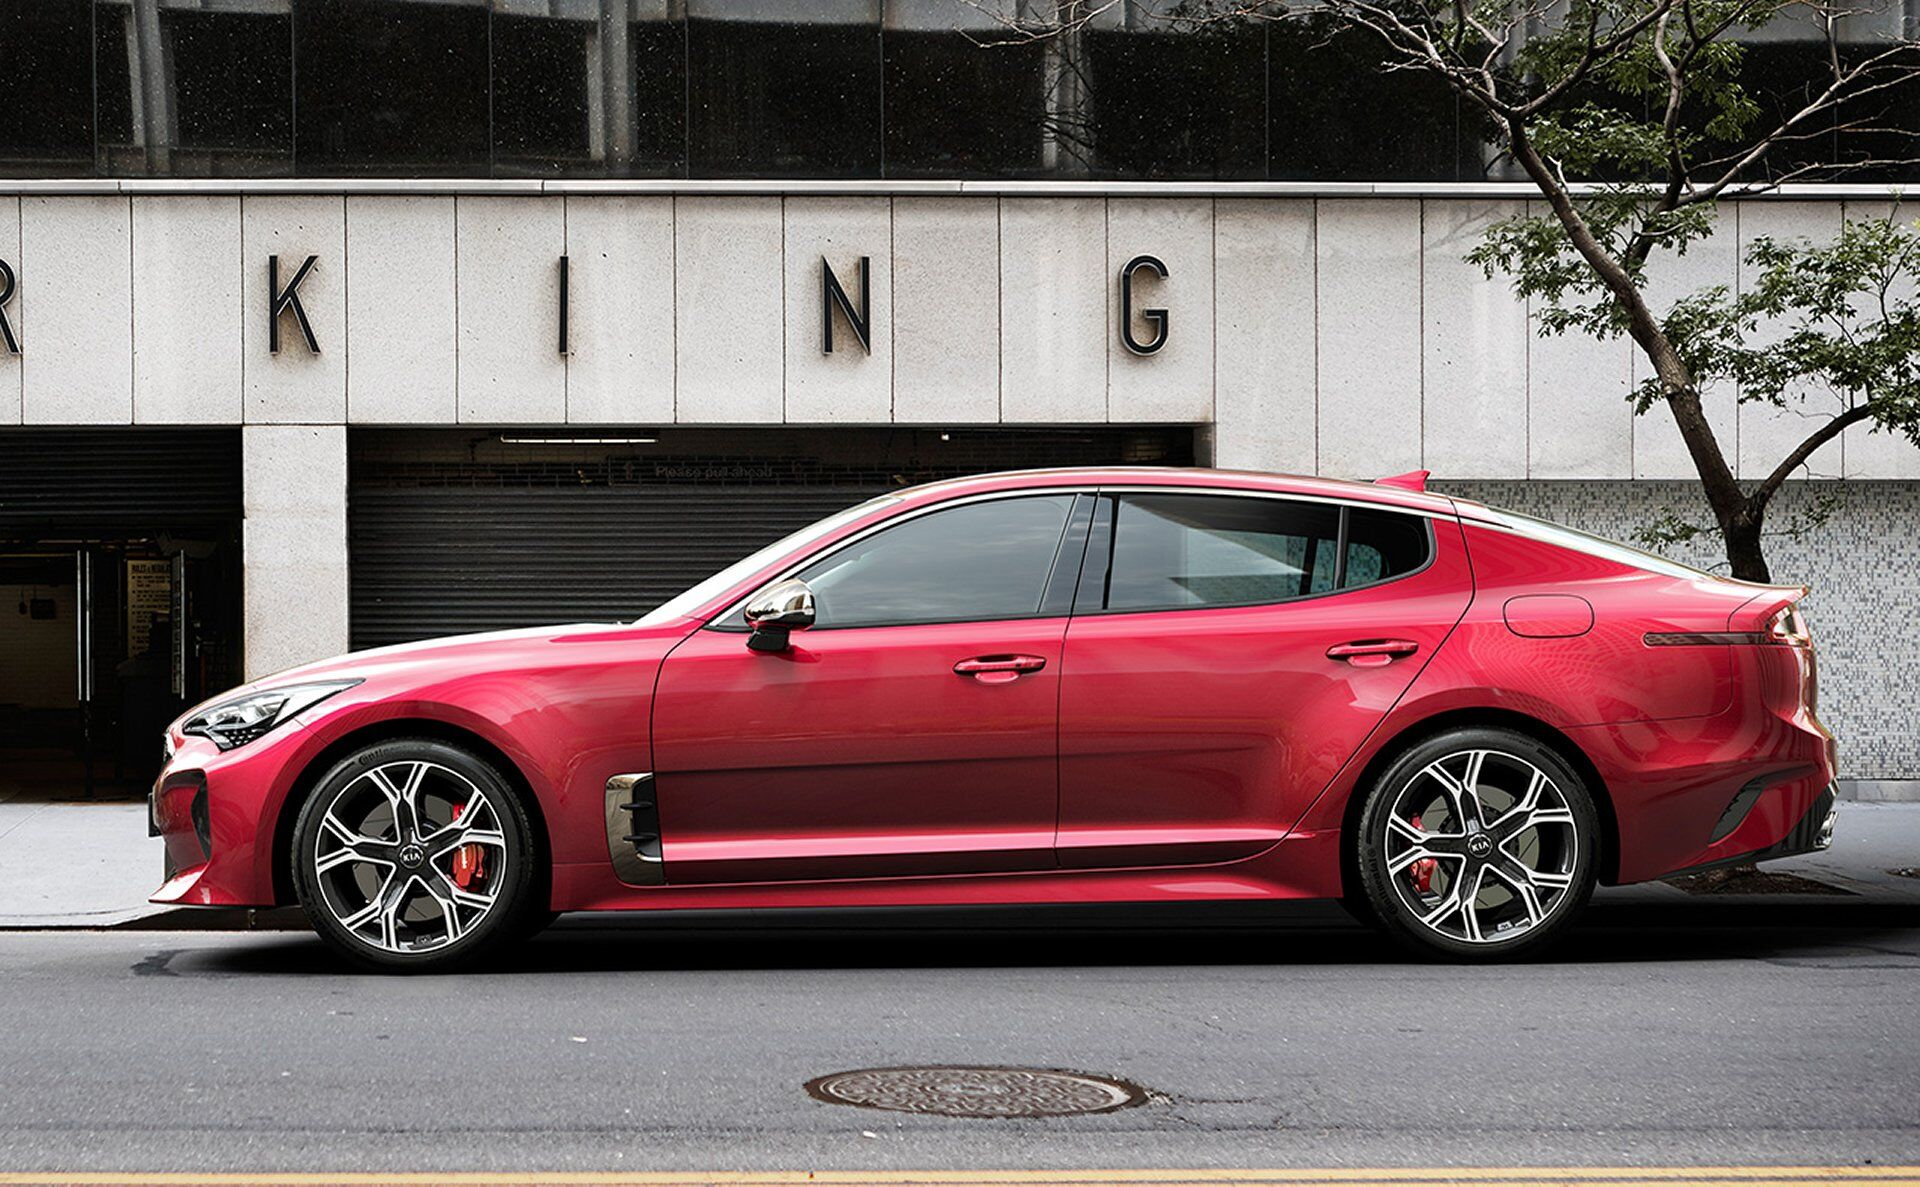 2018 Kia Stinger Dealer